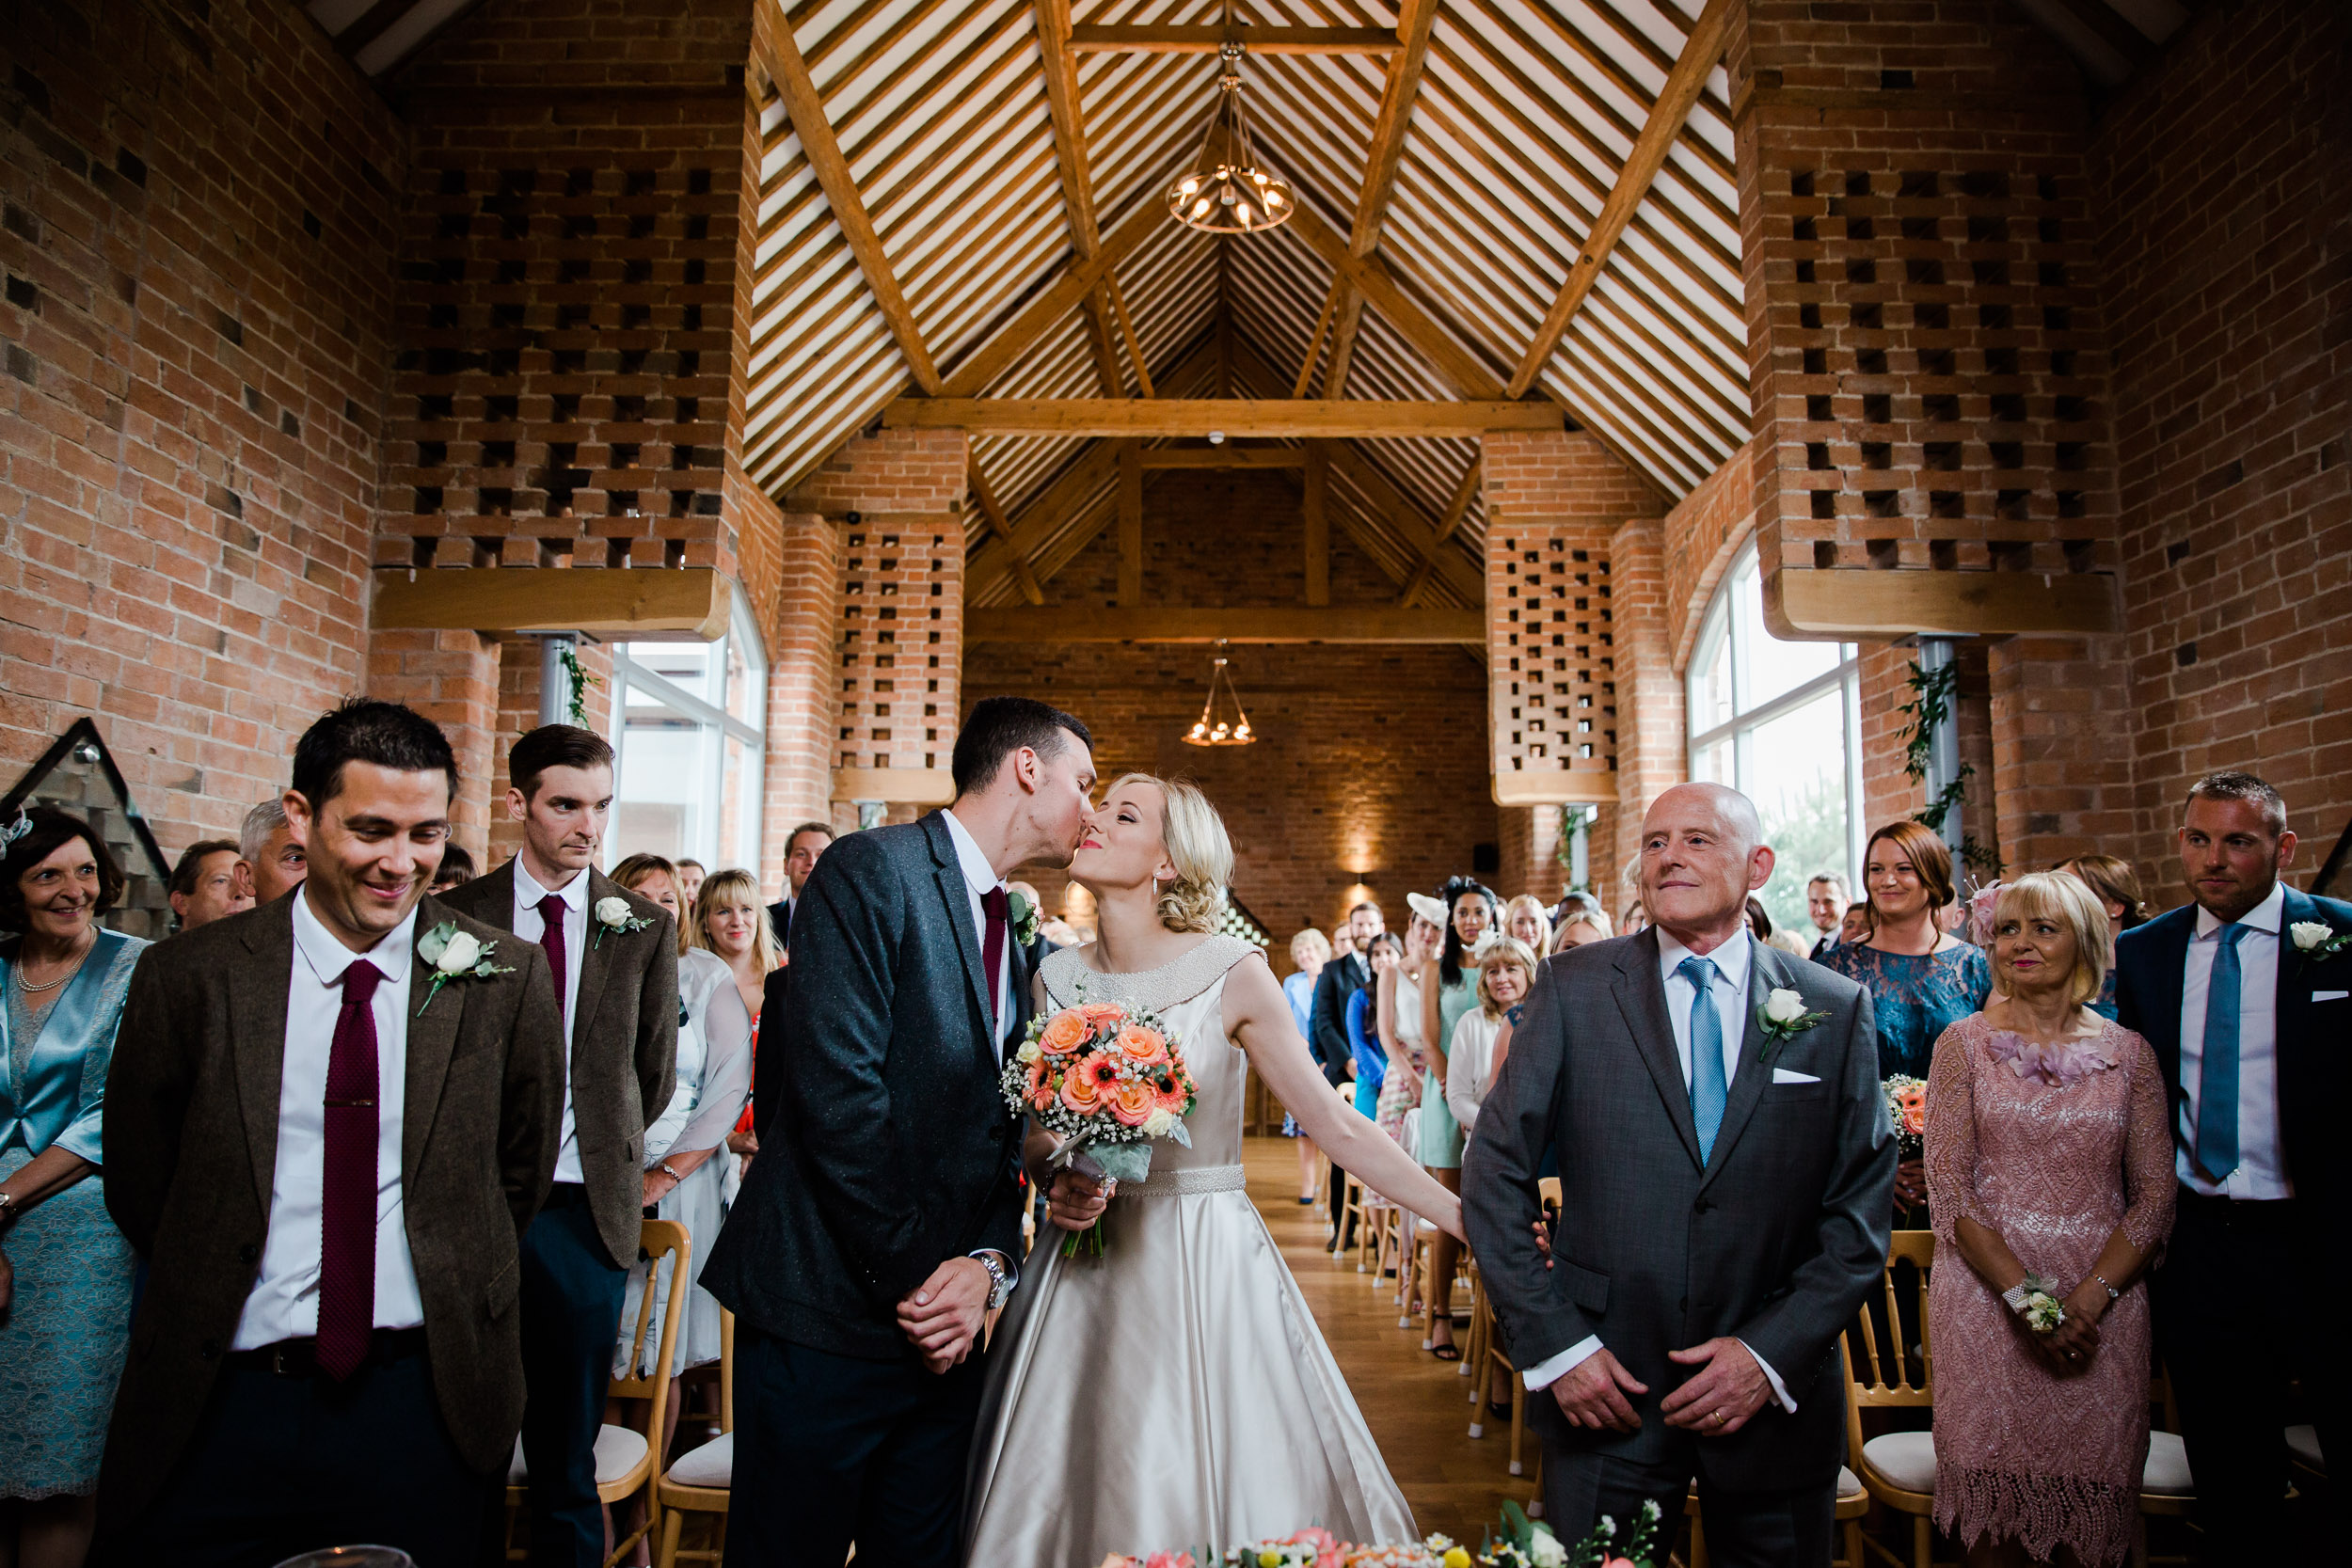 wedding ceremony swallows nest barn warwickshire